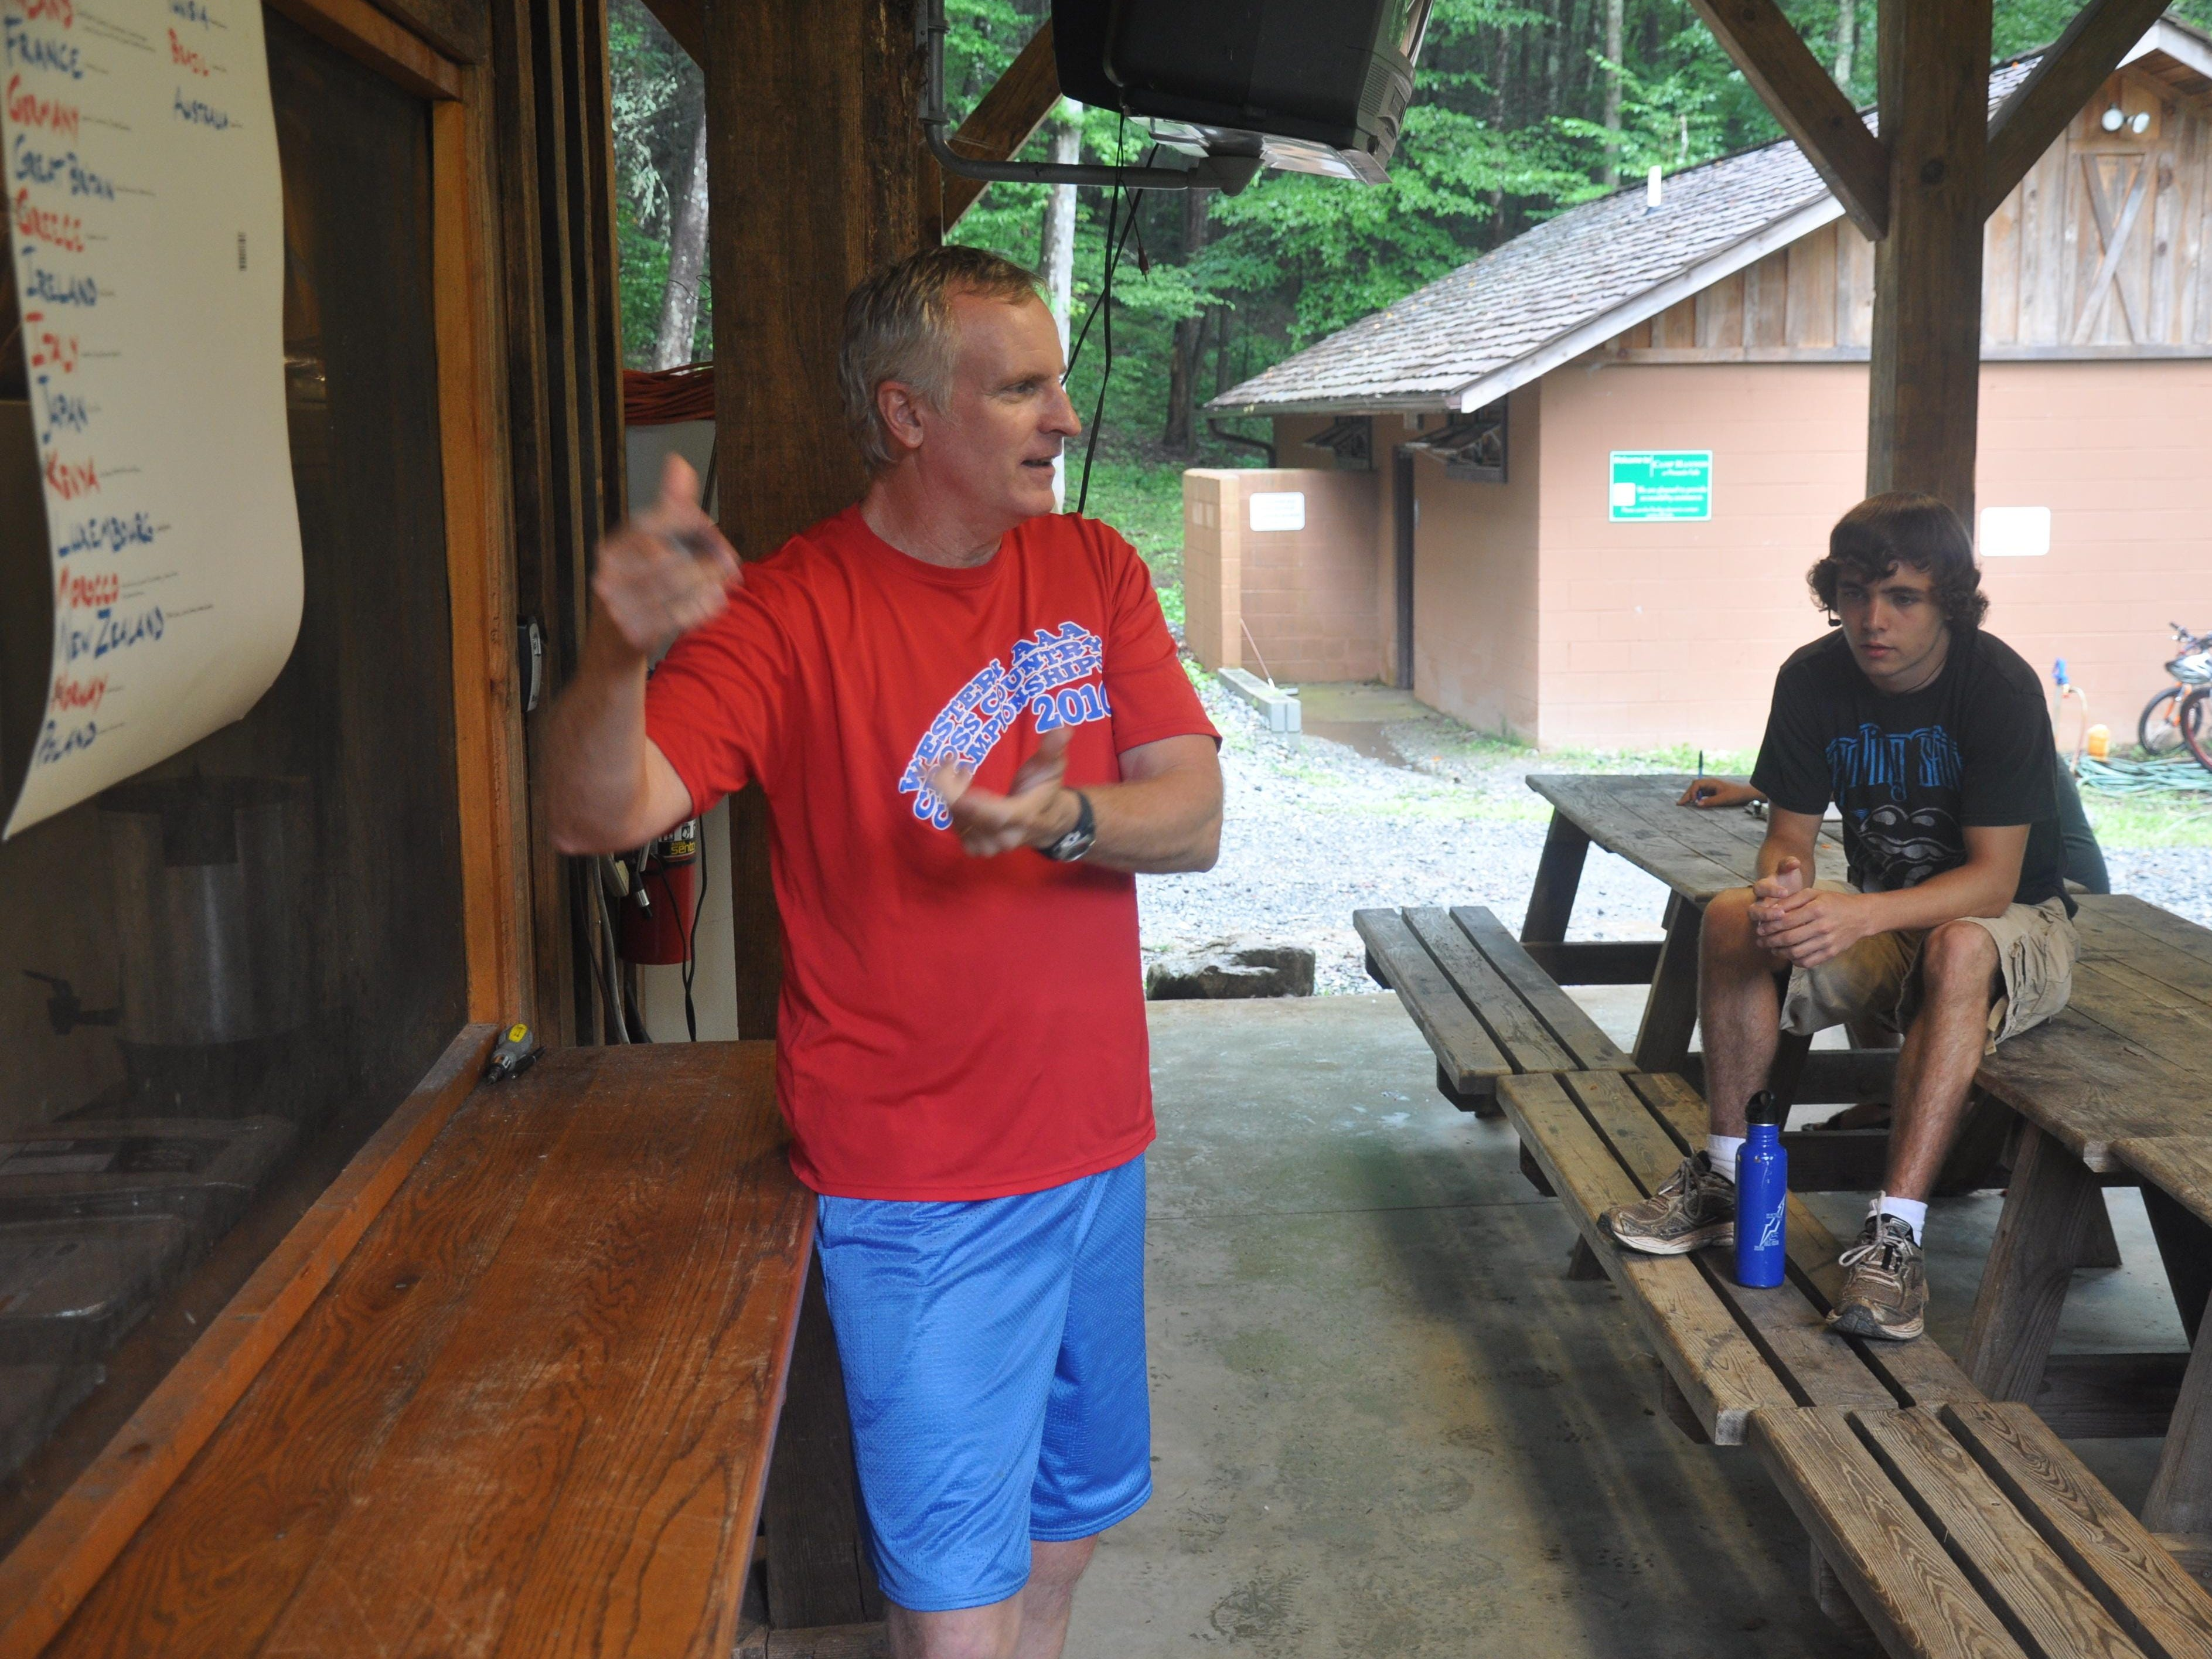 Dan Shonka talks with his captains at Camp Hannon in Sunset during one of his final seasons as Daniel's coach. Shonka will be inducted into the South Carolina Track and Cross Country Coaches Association Hall of Fame Saturday in Columbia.